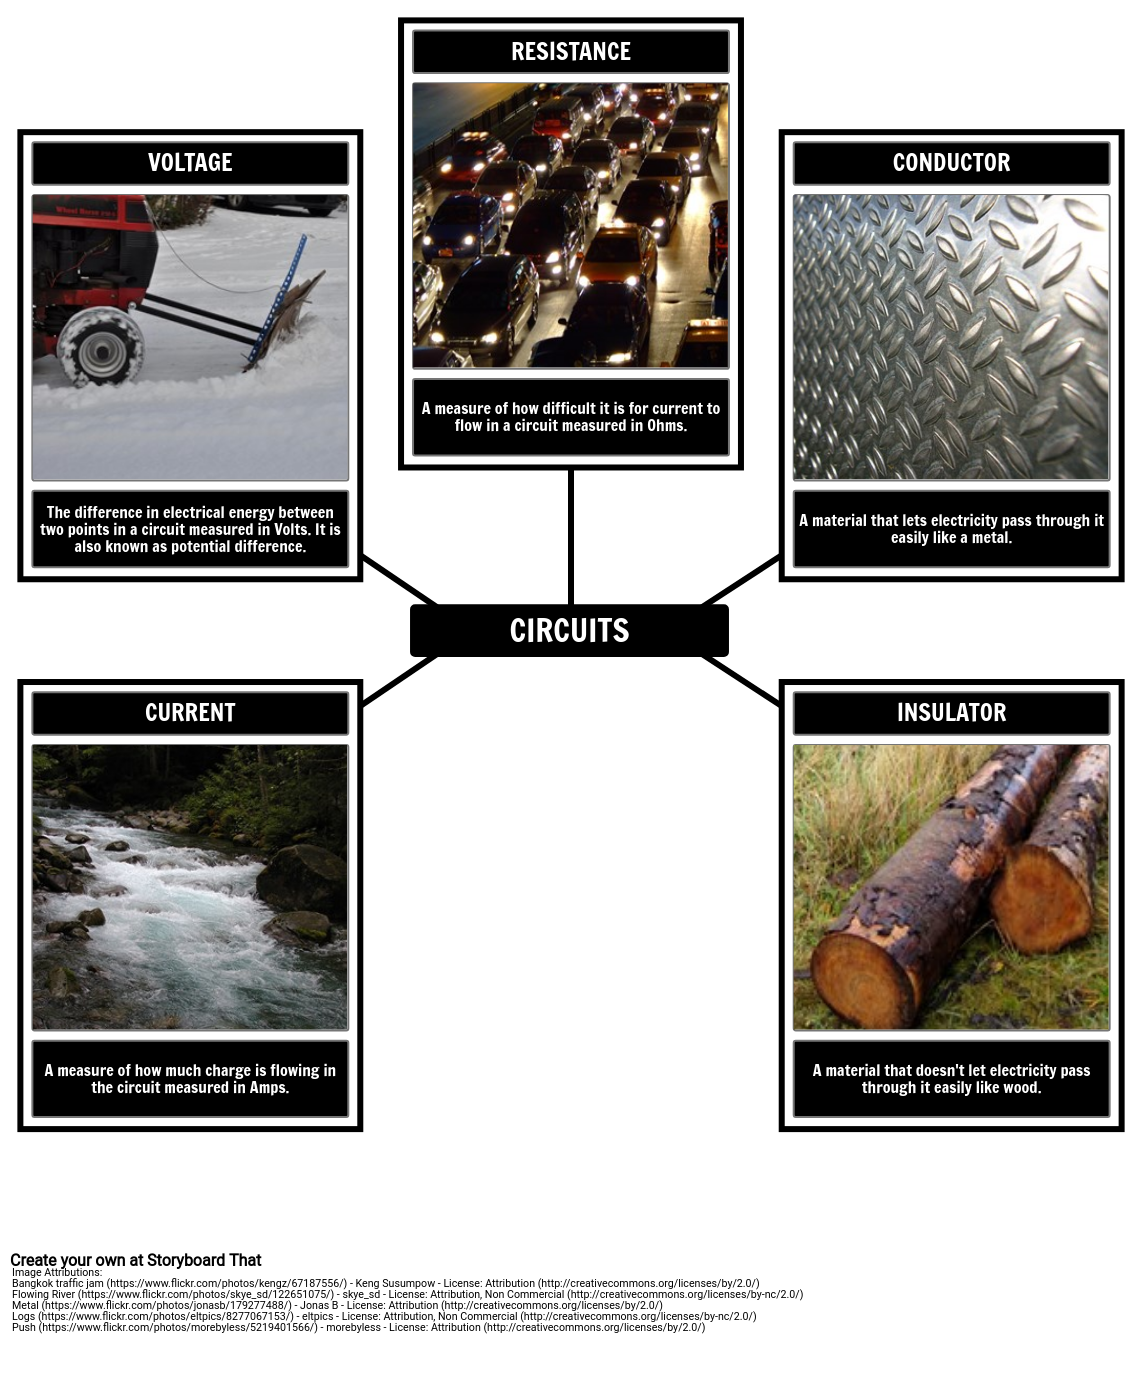 Electrical Circuit Simple Open Energy Parallel Image Visual Dictionary Online Circuits Science Vocabulary